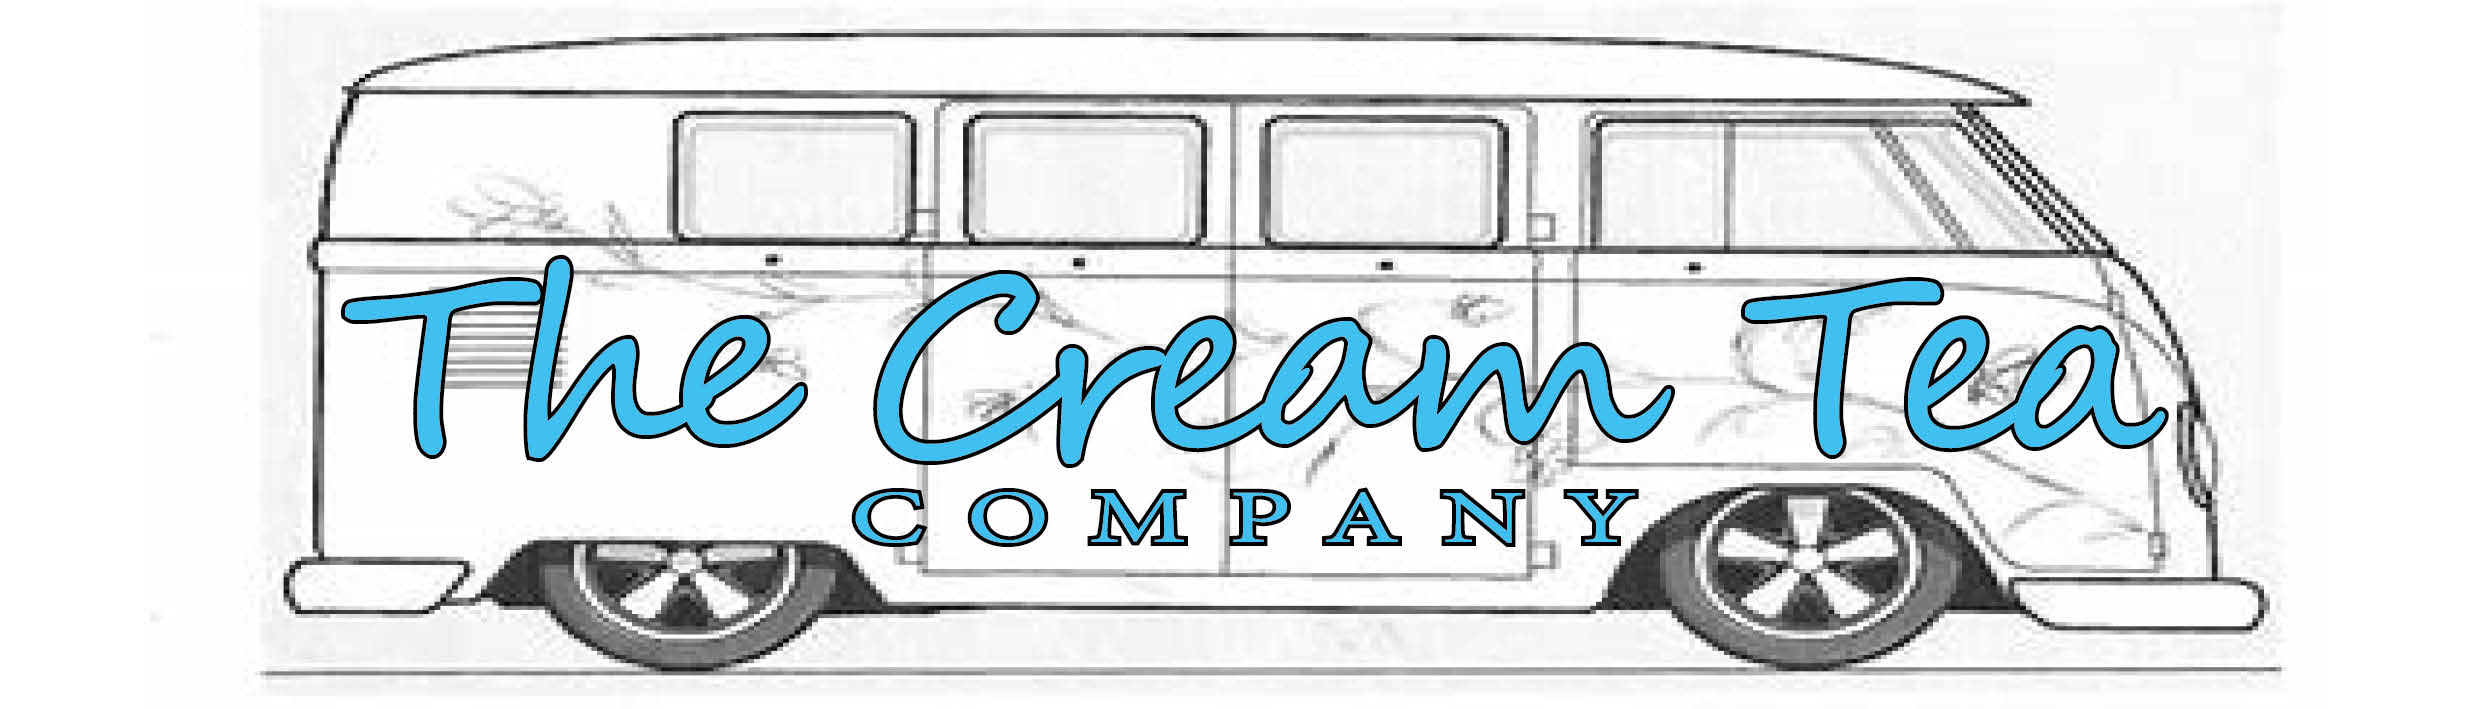 The Cream Tea Company